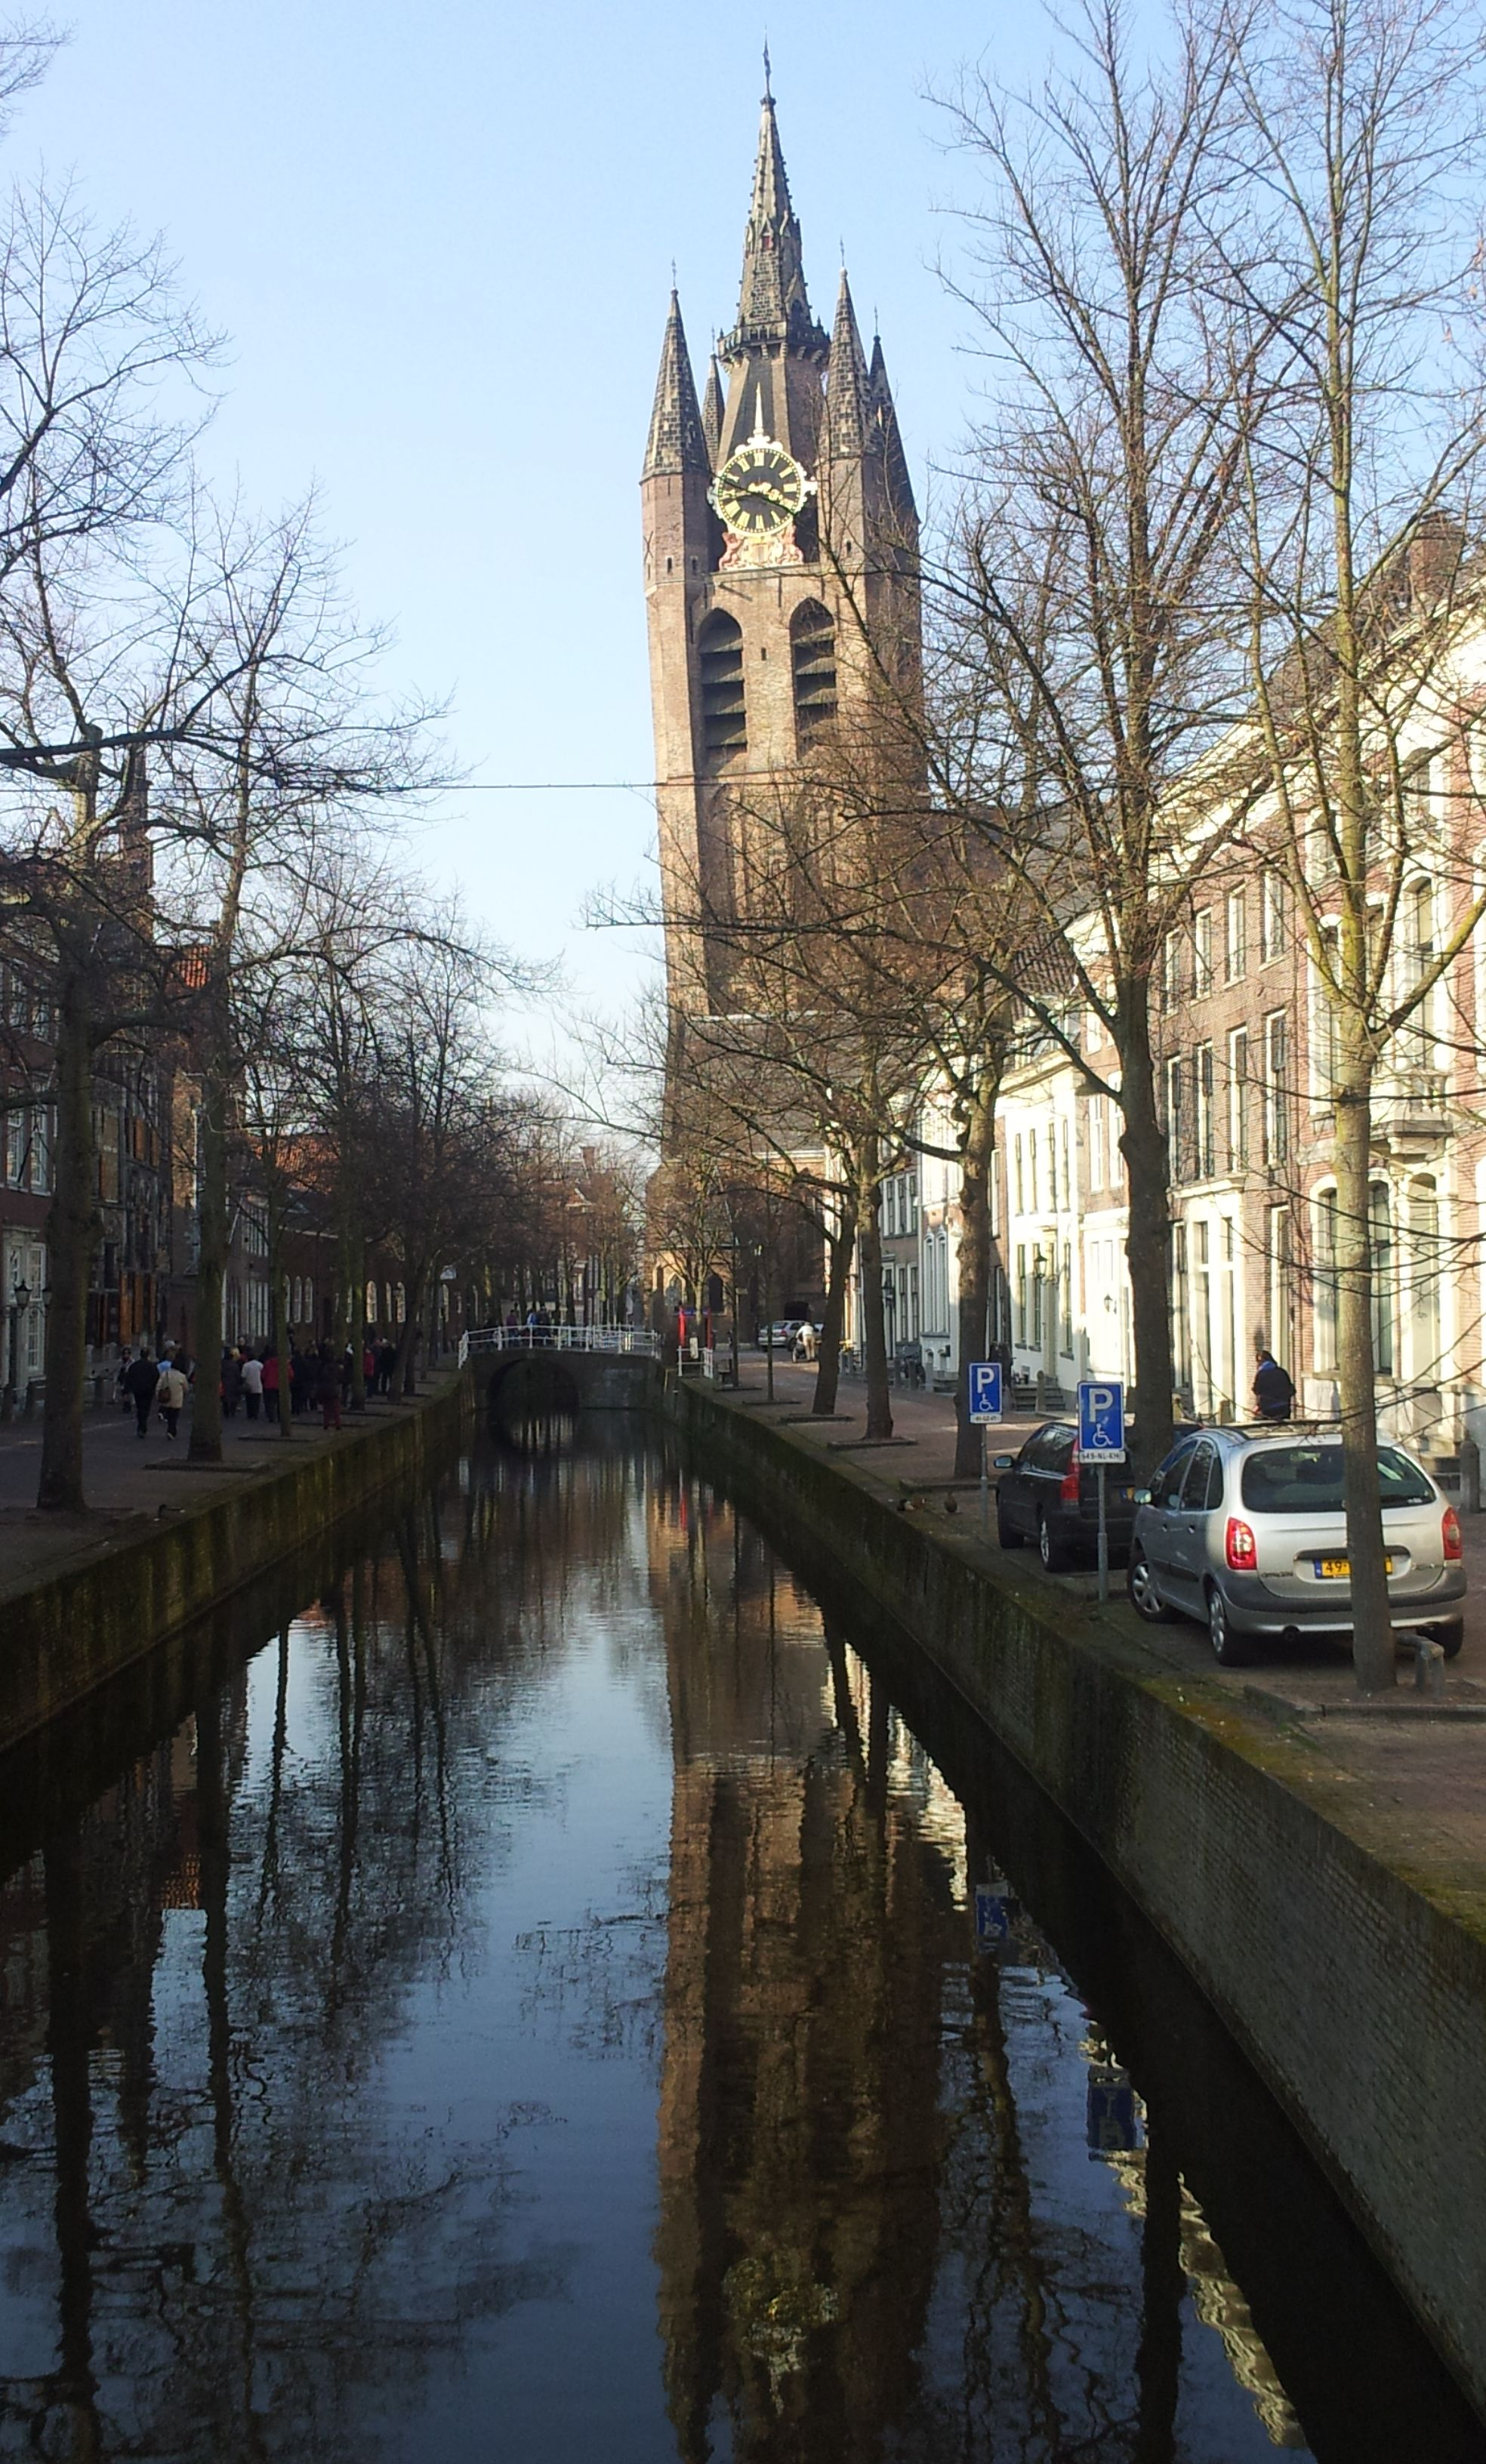 Oude kerk (Old Church) - Photo by Petka